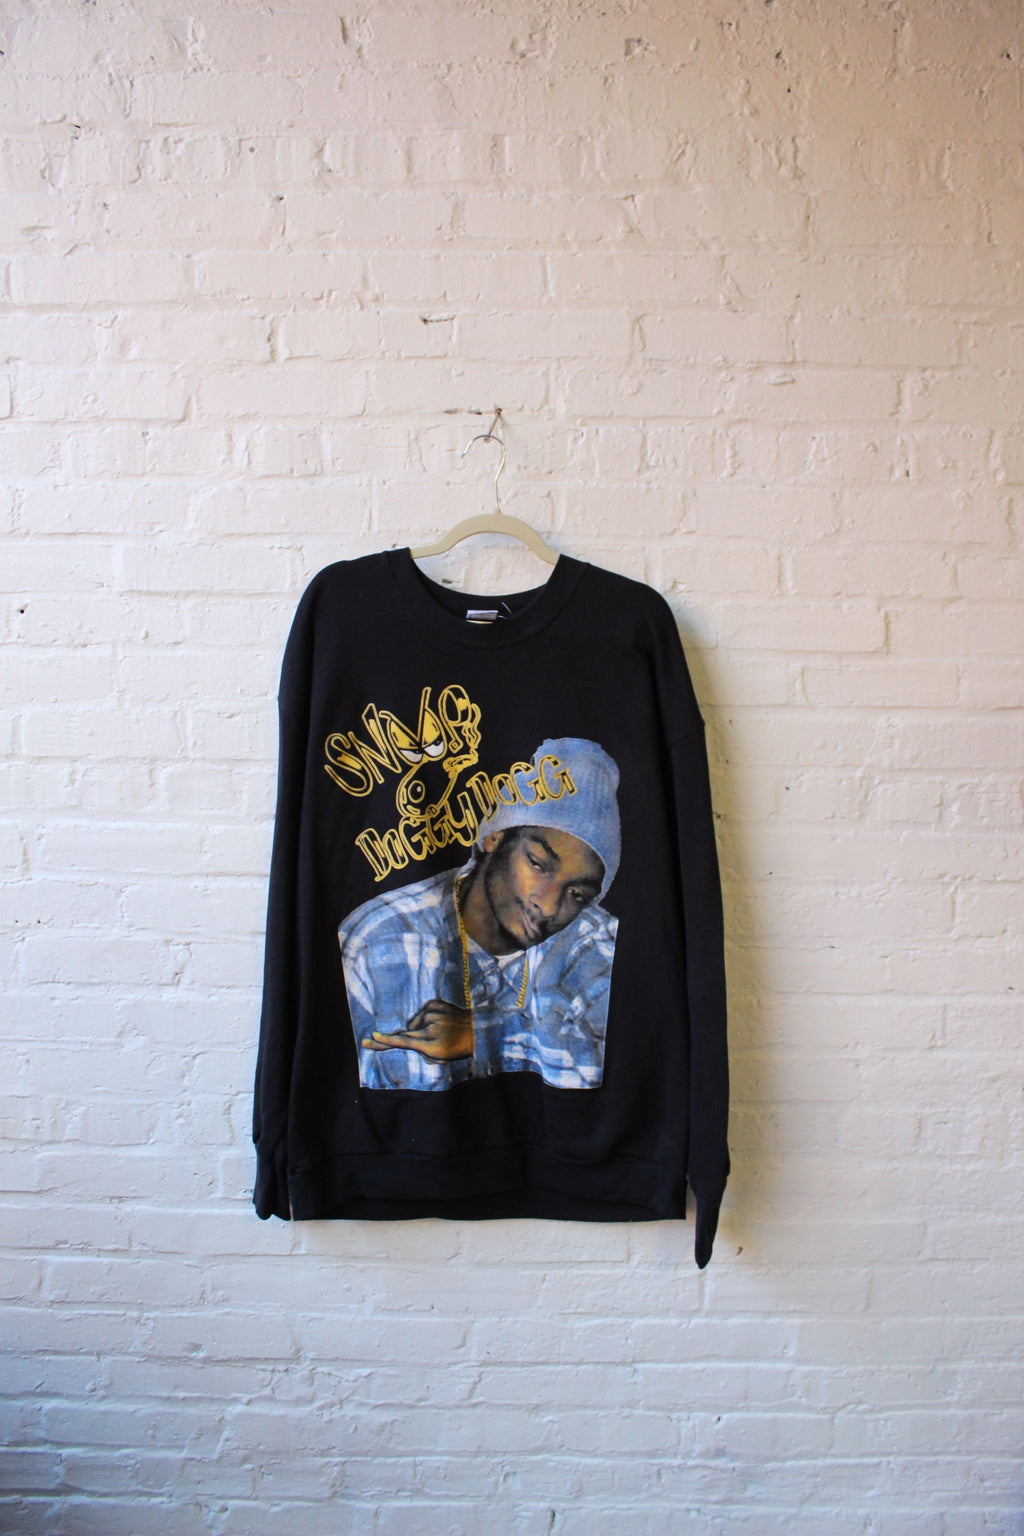 Snoop Doggy Dogg Rap Crewneck